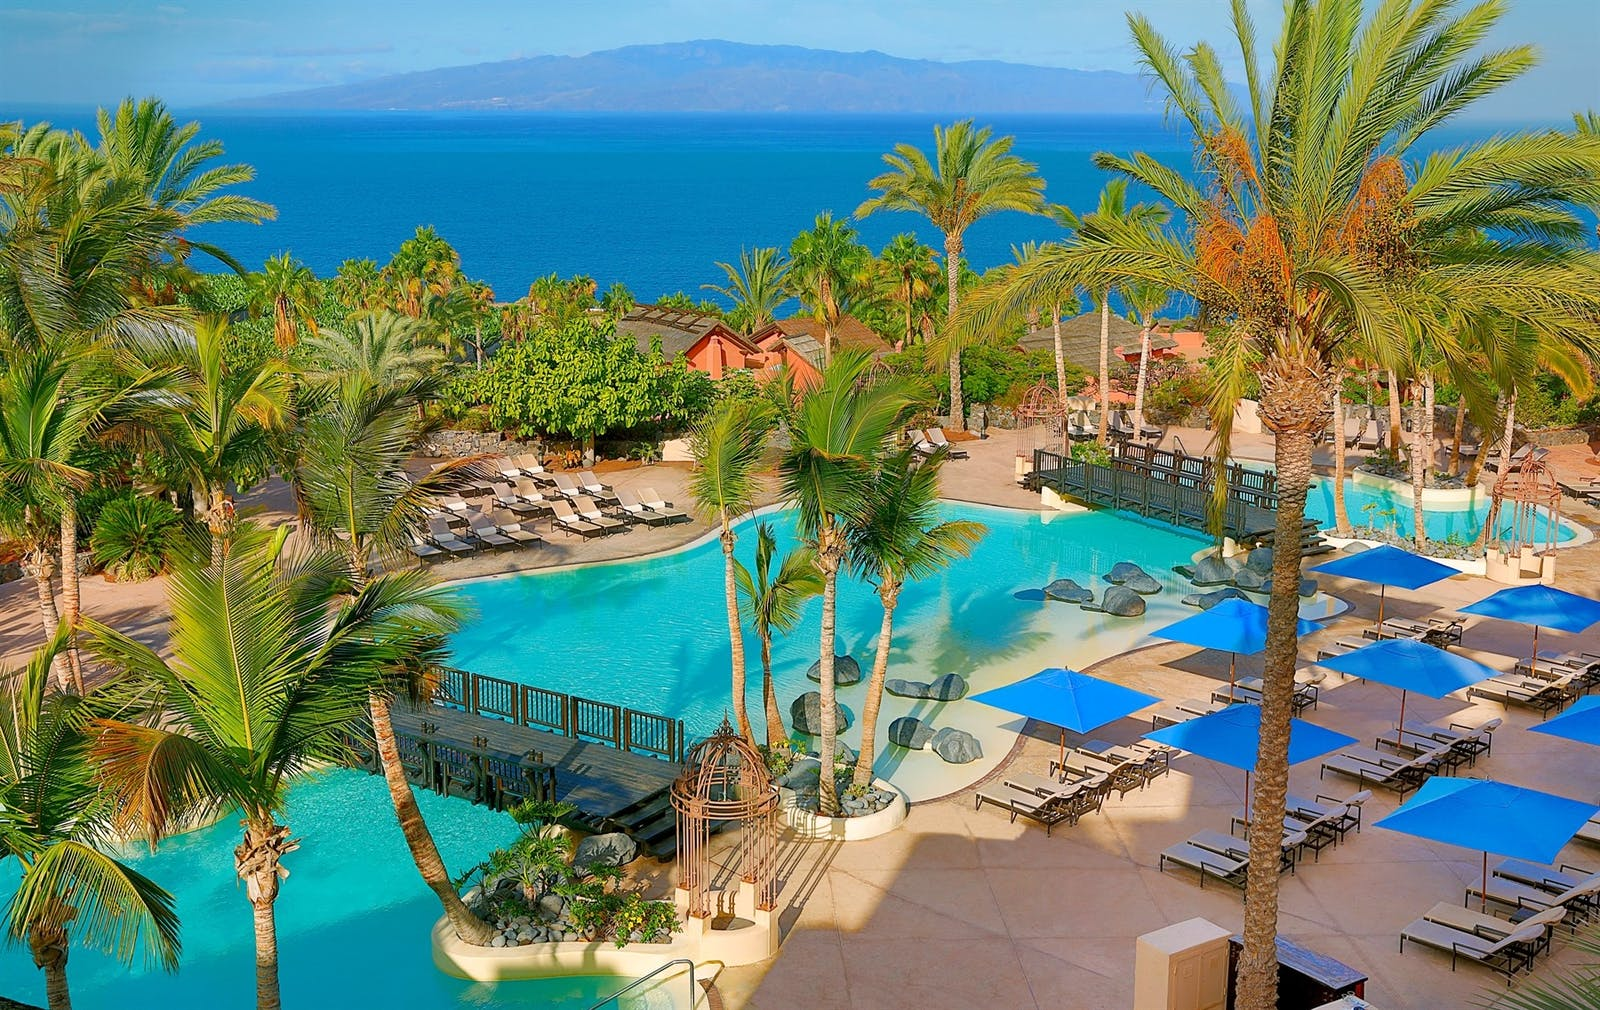 Lagoon pool, The Ritz-Carlton, Abama, Tenerife